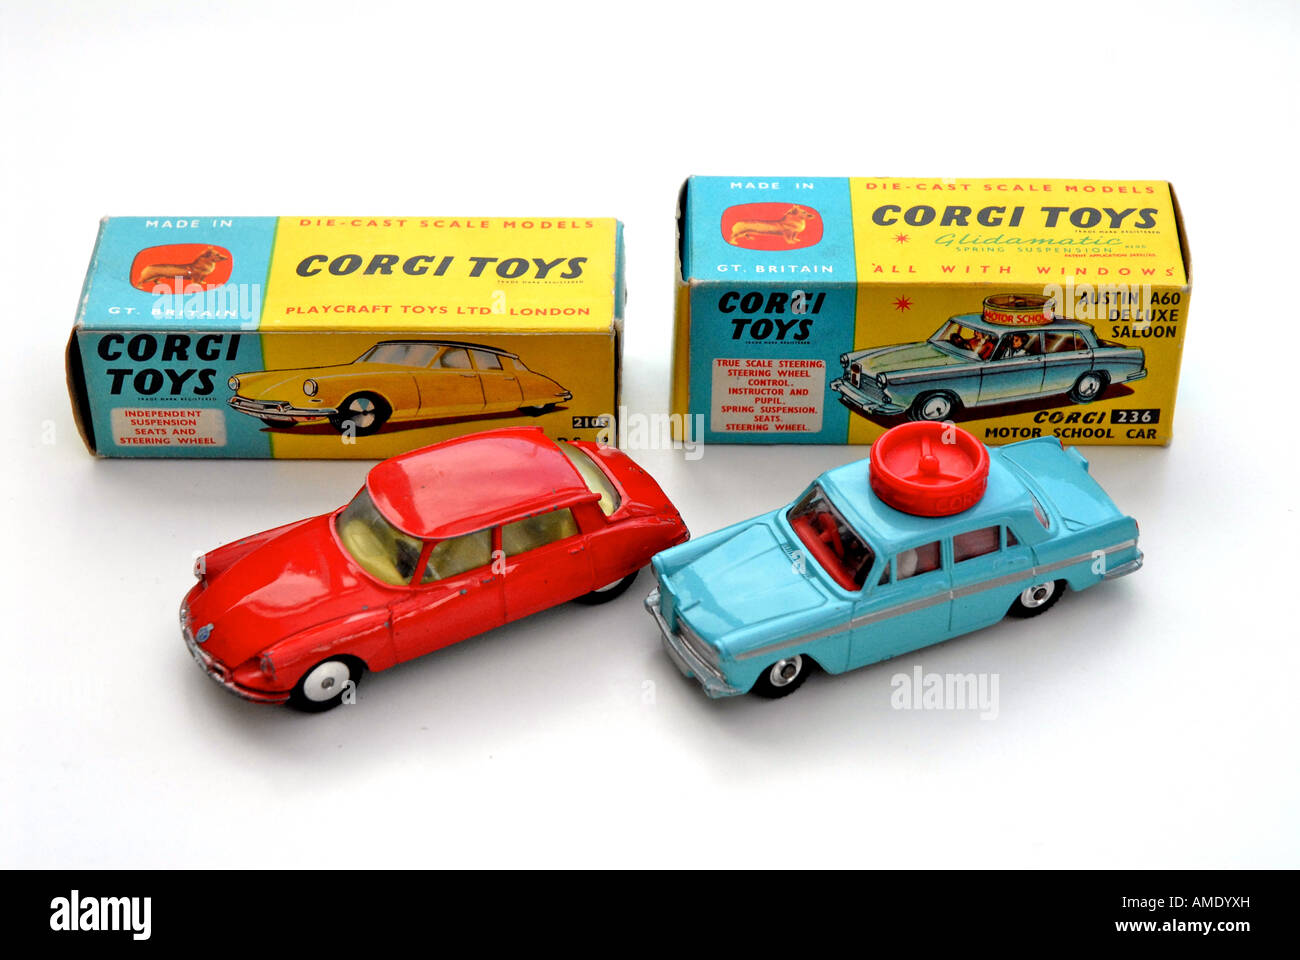 Collector Toys Stock Photos & Collector Toys Stock Images - Alamy